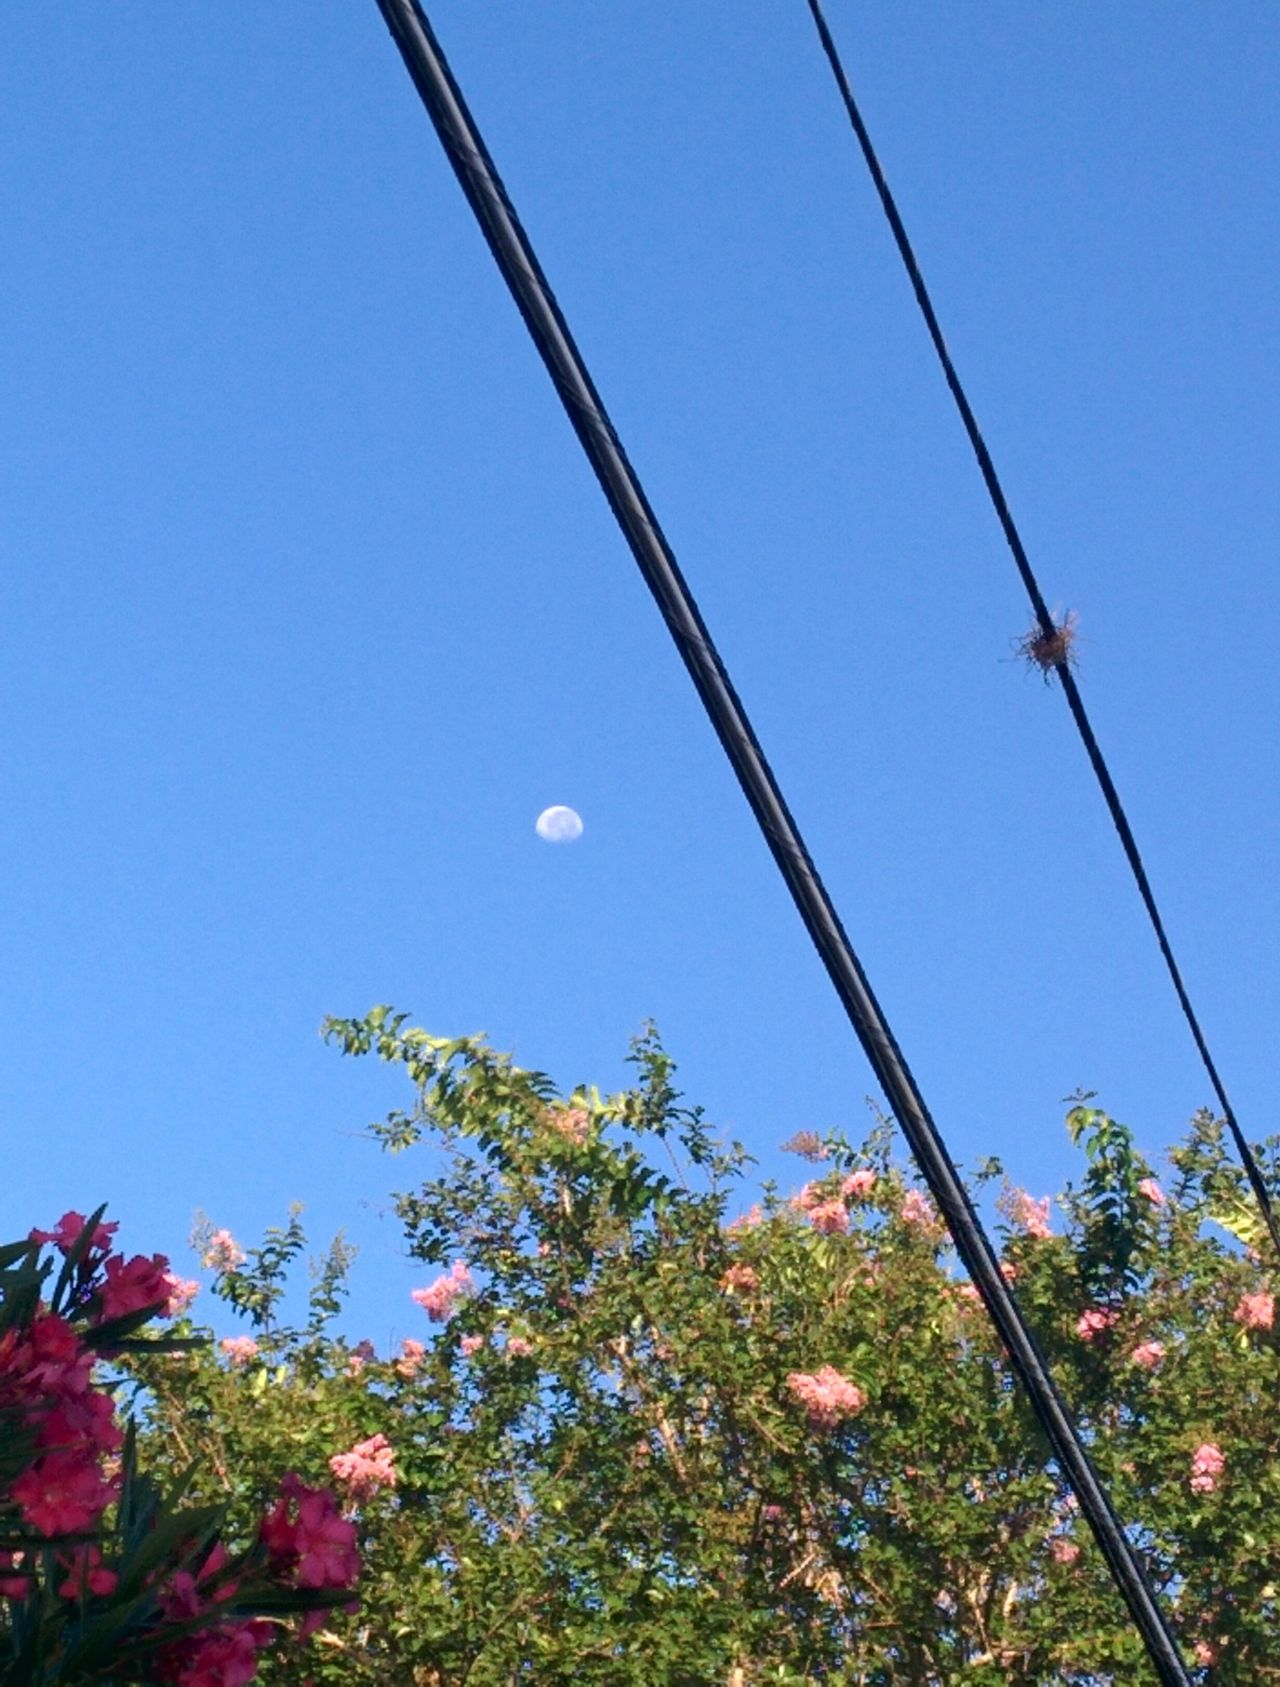 the Moon early in the morning Nature Flower Morning Floral Pattern Outdoors Plant Beauty In Nature Sky And Trees Sky